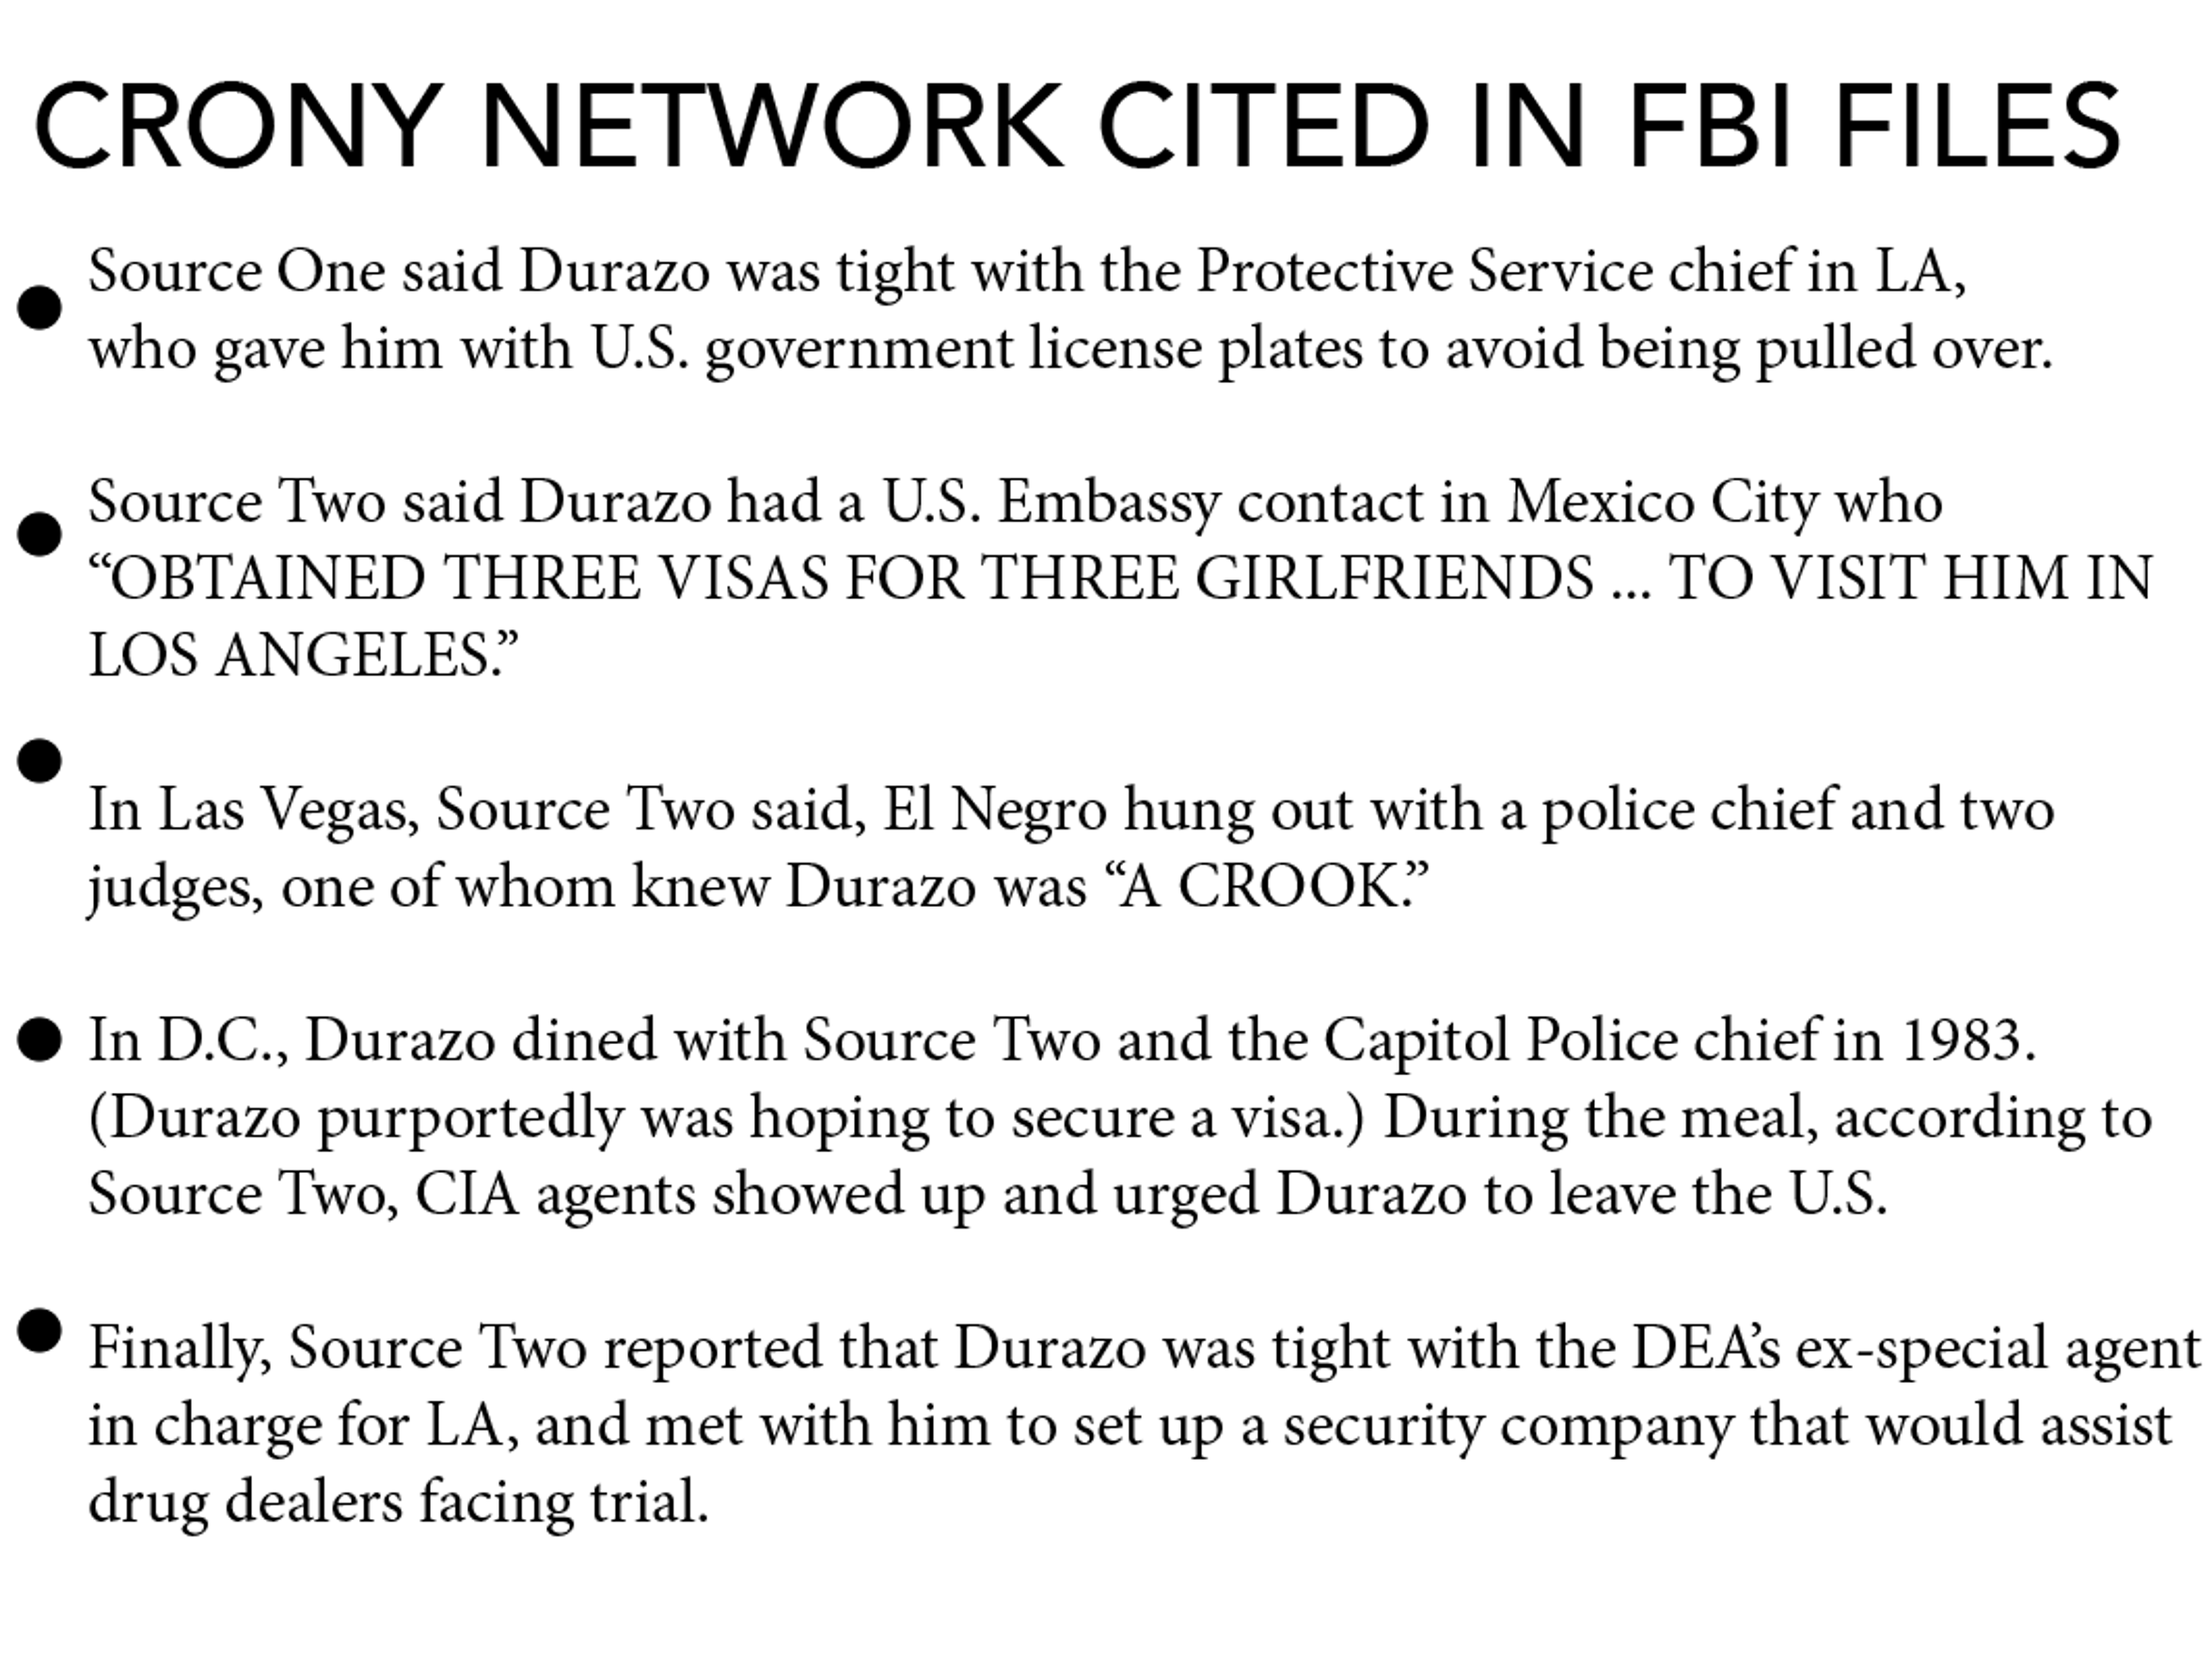 Arturo Durazo Moreno's tangled and crony network included